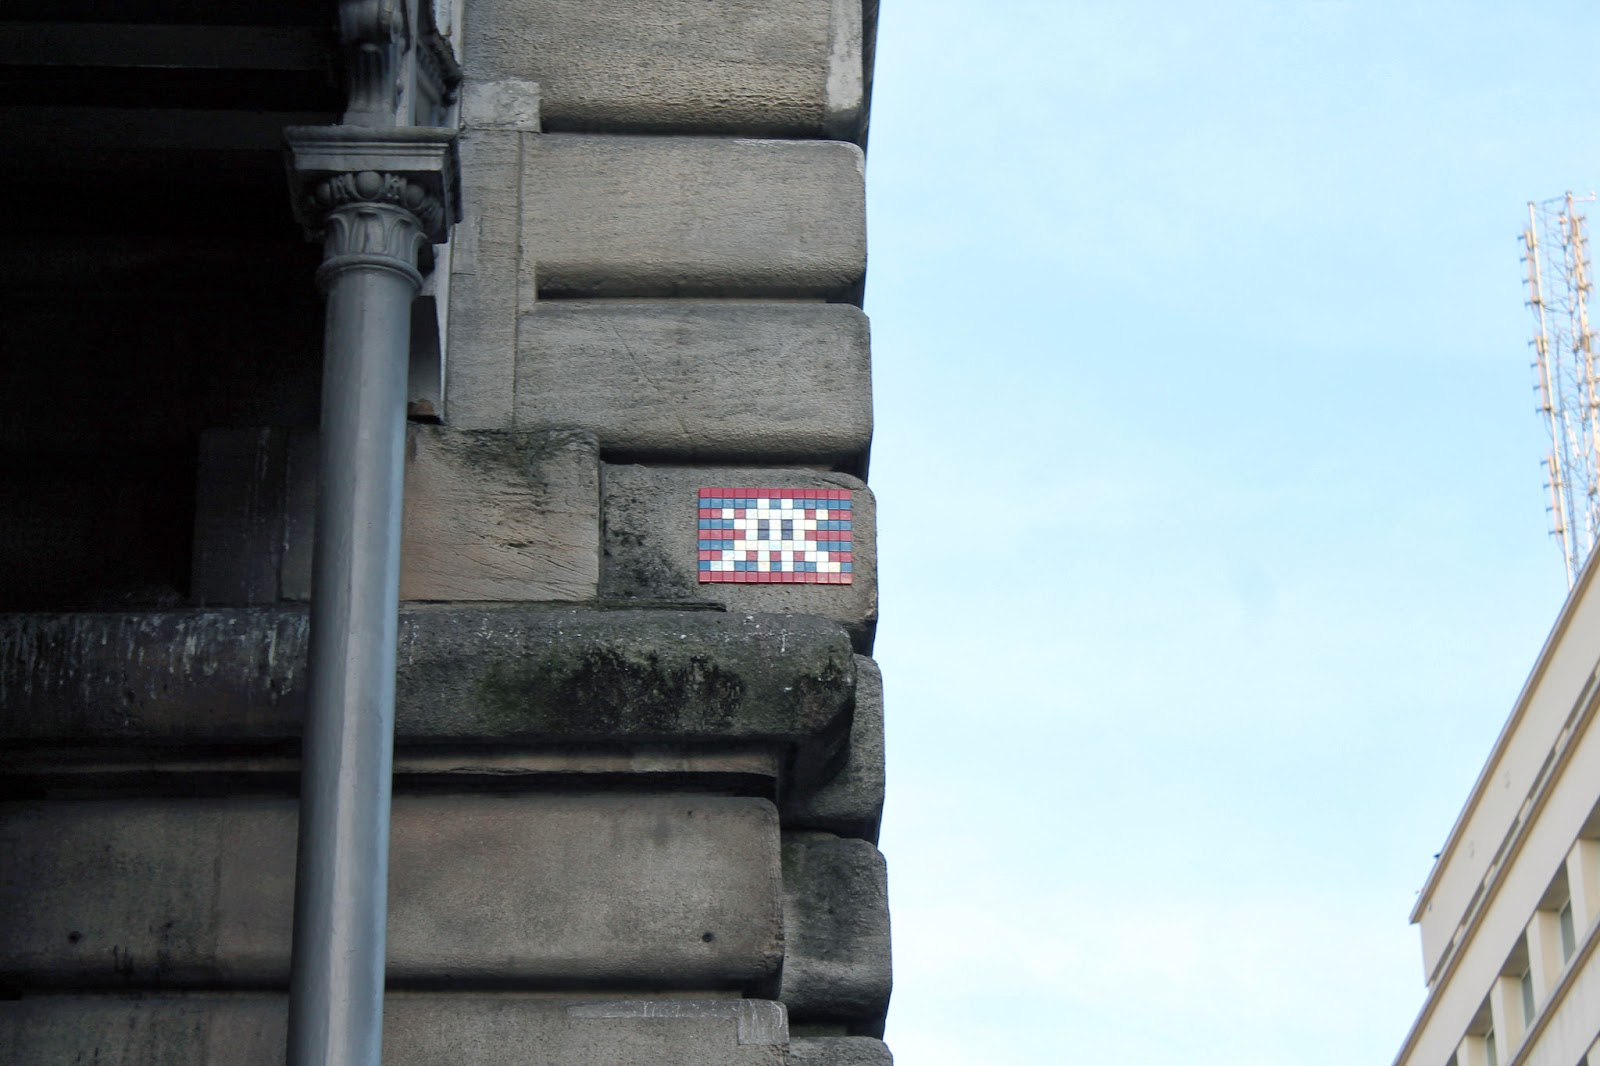 invader-a-new-invasion-in-paris-france-08